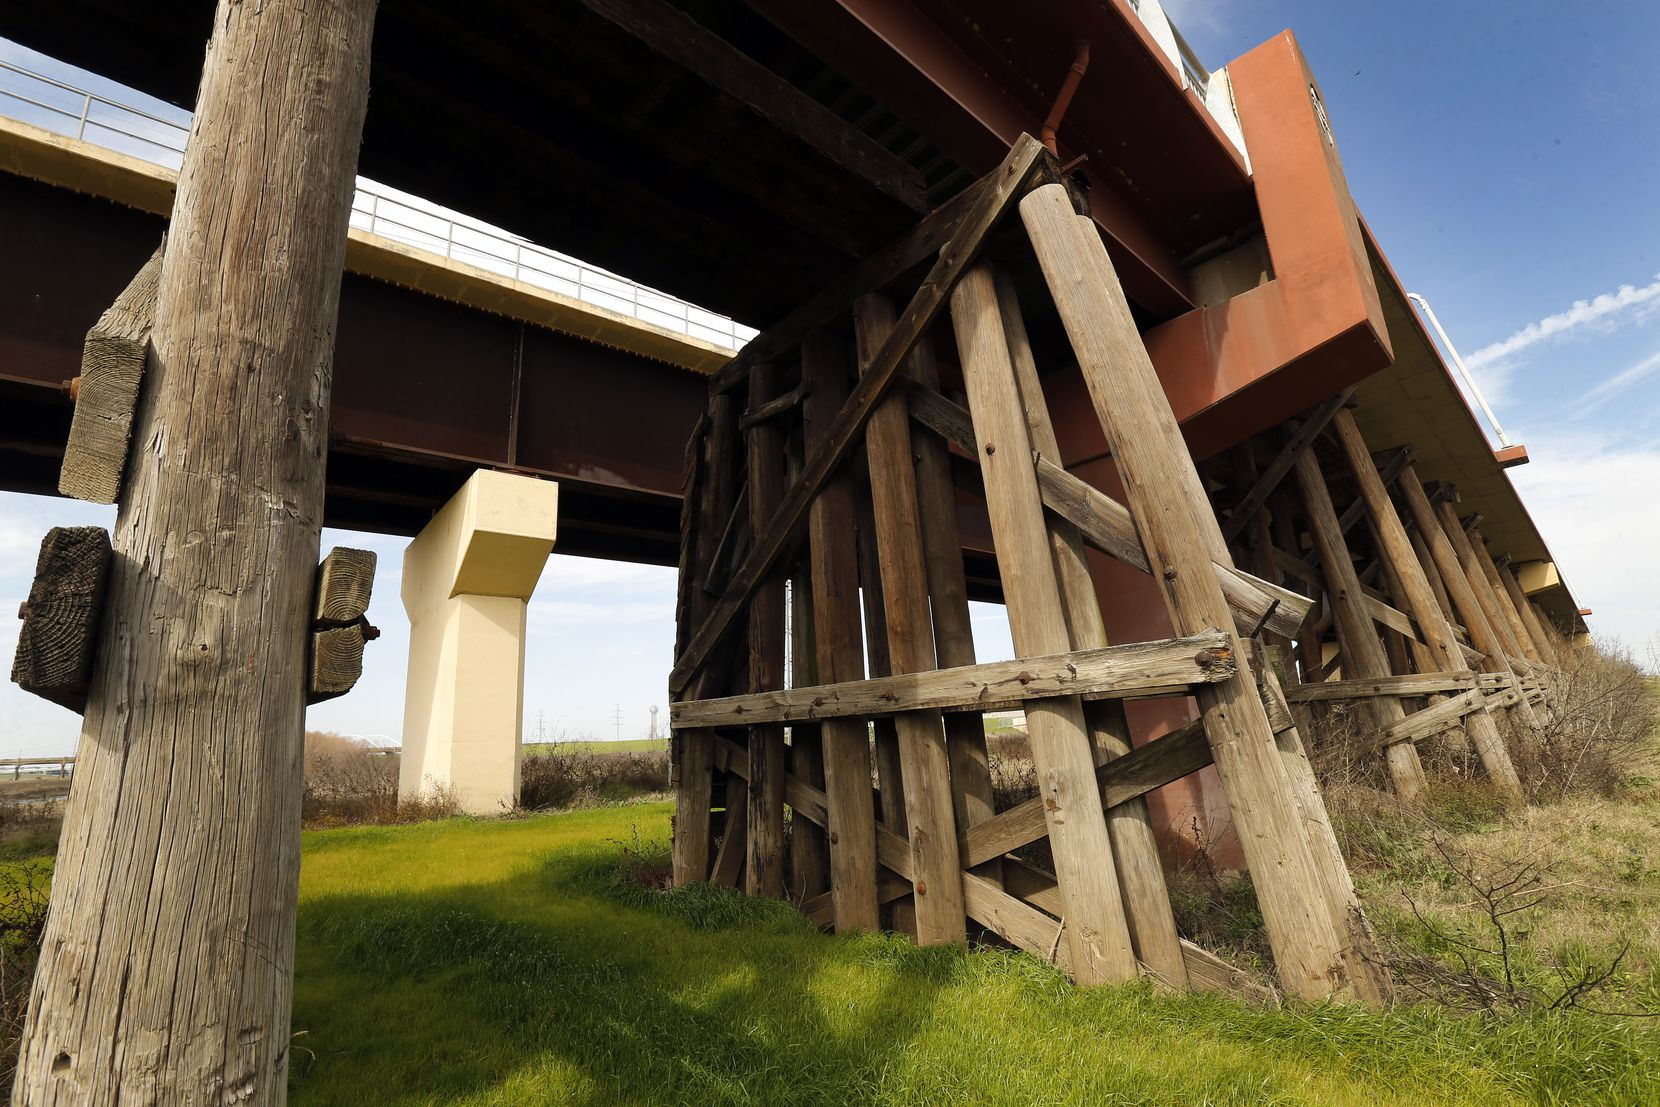 The Santa Fe Trestle Trail was built over the old Atchison Topeka & Santa Fe (AT&SF) trestle bridge structure, the original wooden structure in the Trinity Riverfloodplain.